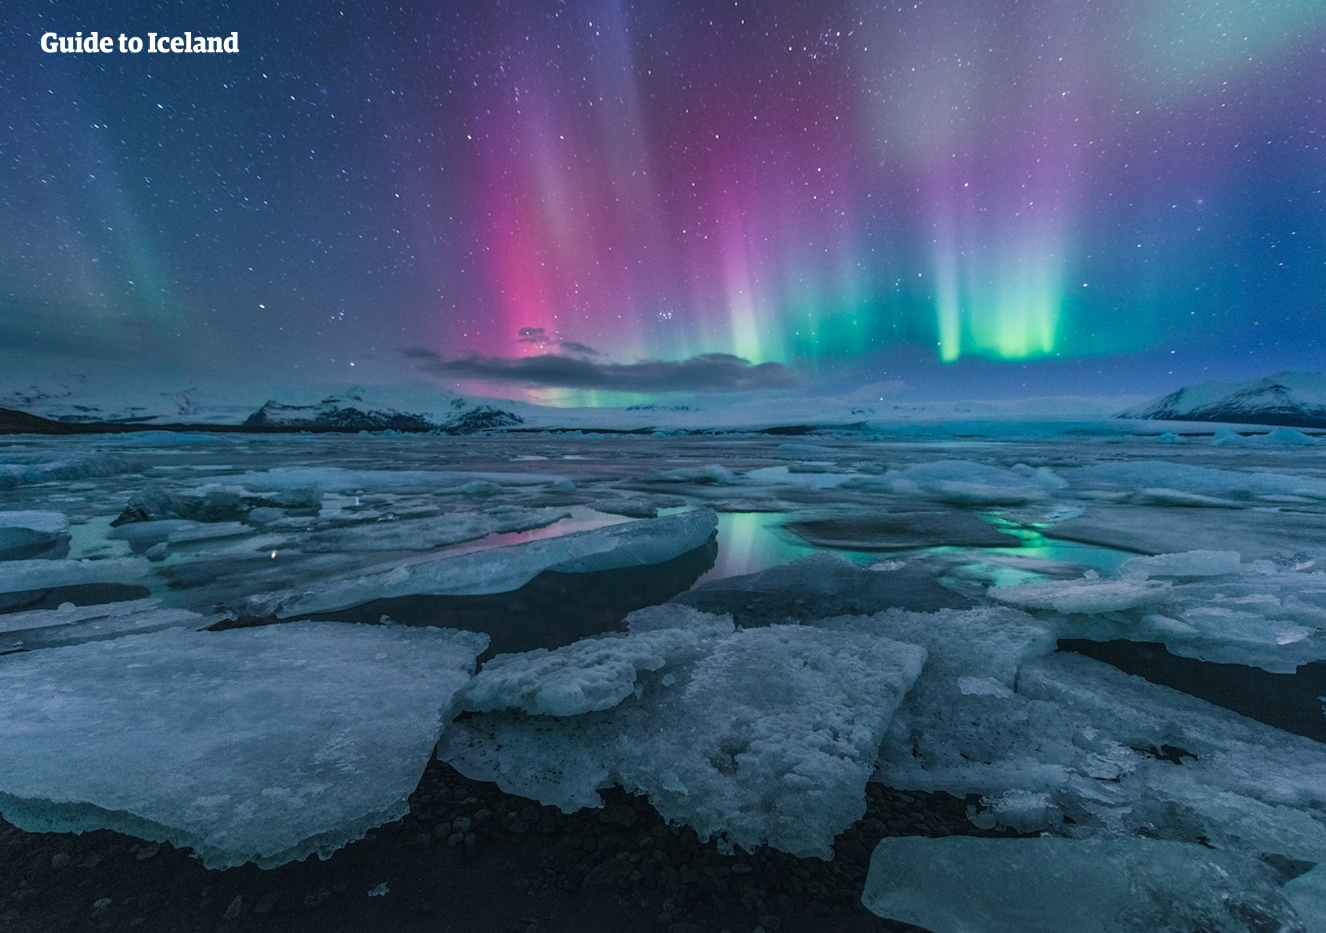 Perhaps you'll see the Northern Lights dancing over Jökulsárlón glacier lagoon on this budget winter tour.